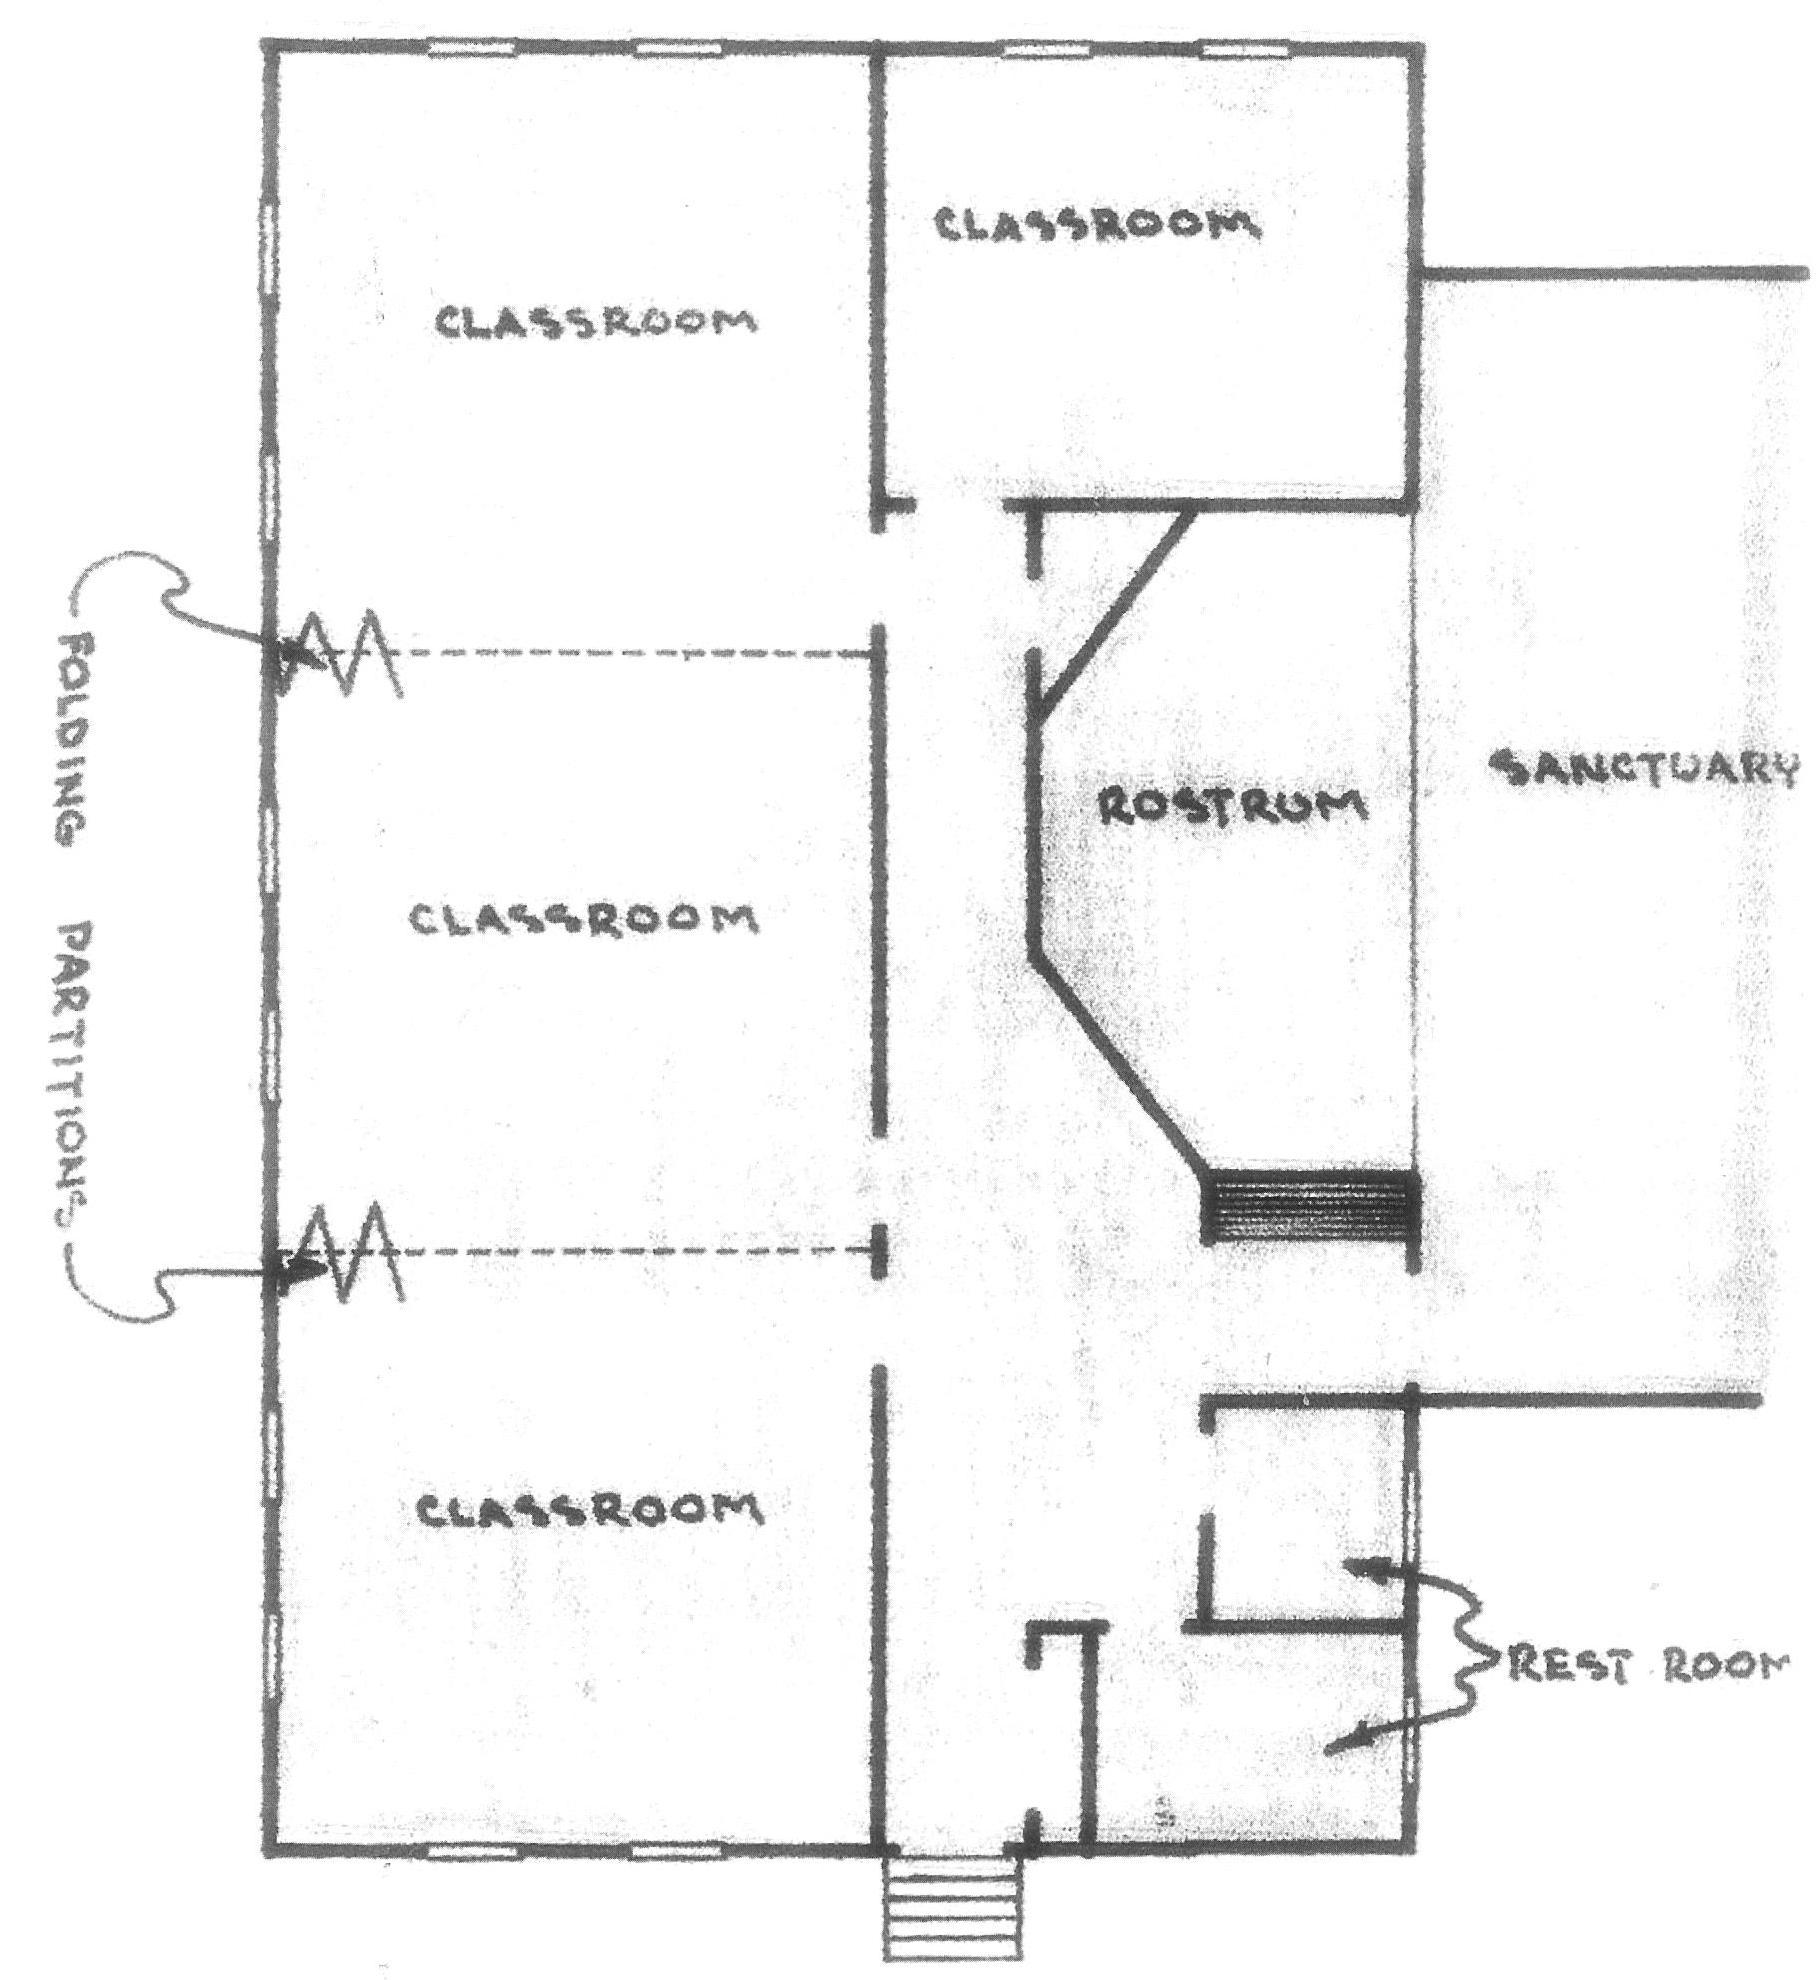 """Floor Plan for the """" Classroom Addition """" drawn by Rev. Trent Howell Jr. during the summer of 1952."""